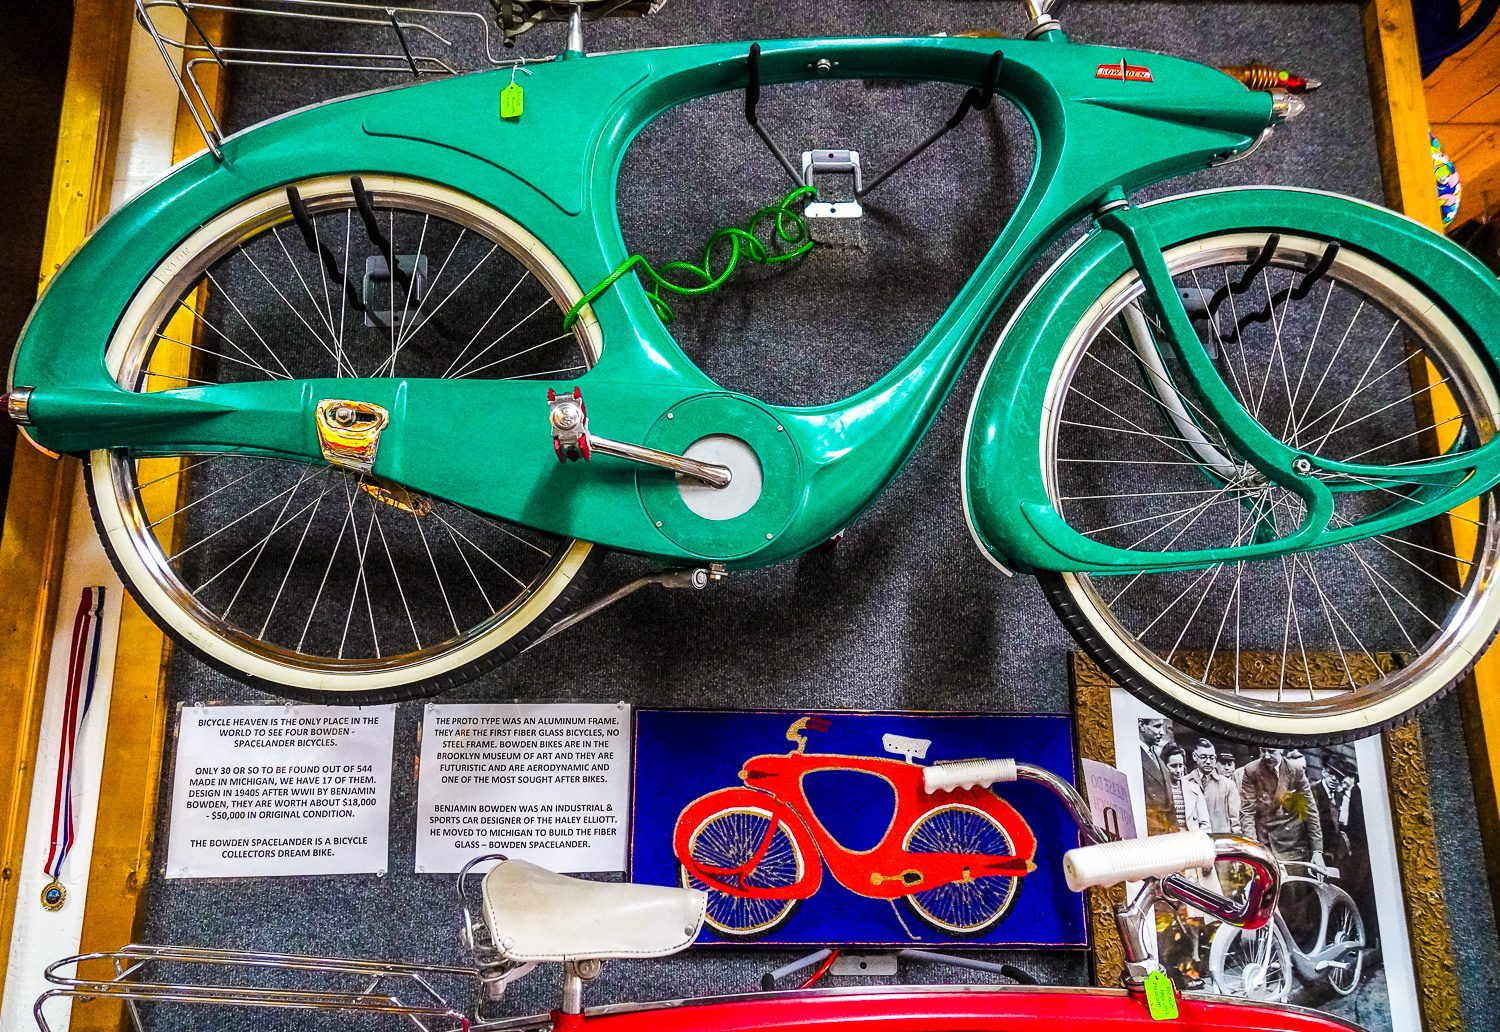 Bowden Spacelander bicycles: Extremely valuable bikes worth around $50,000 each!